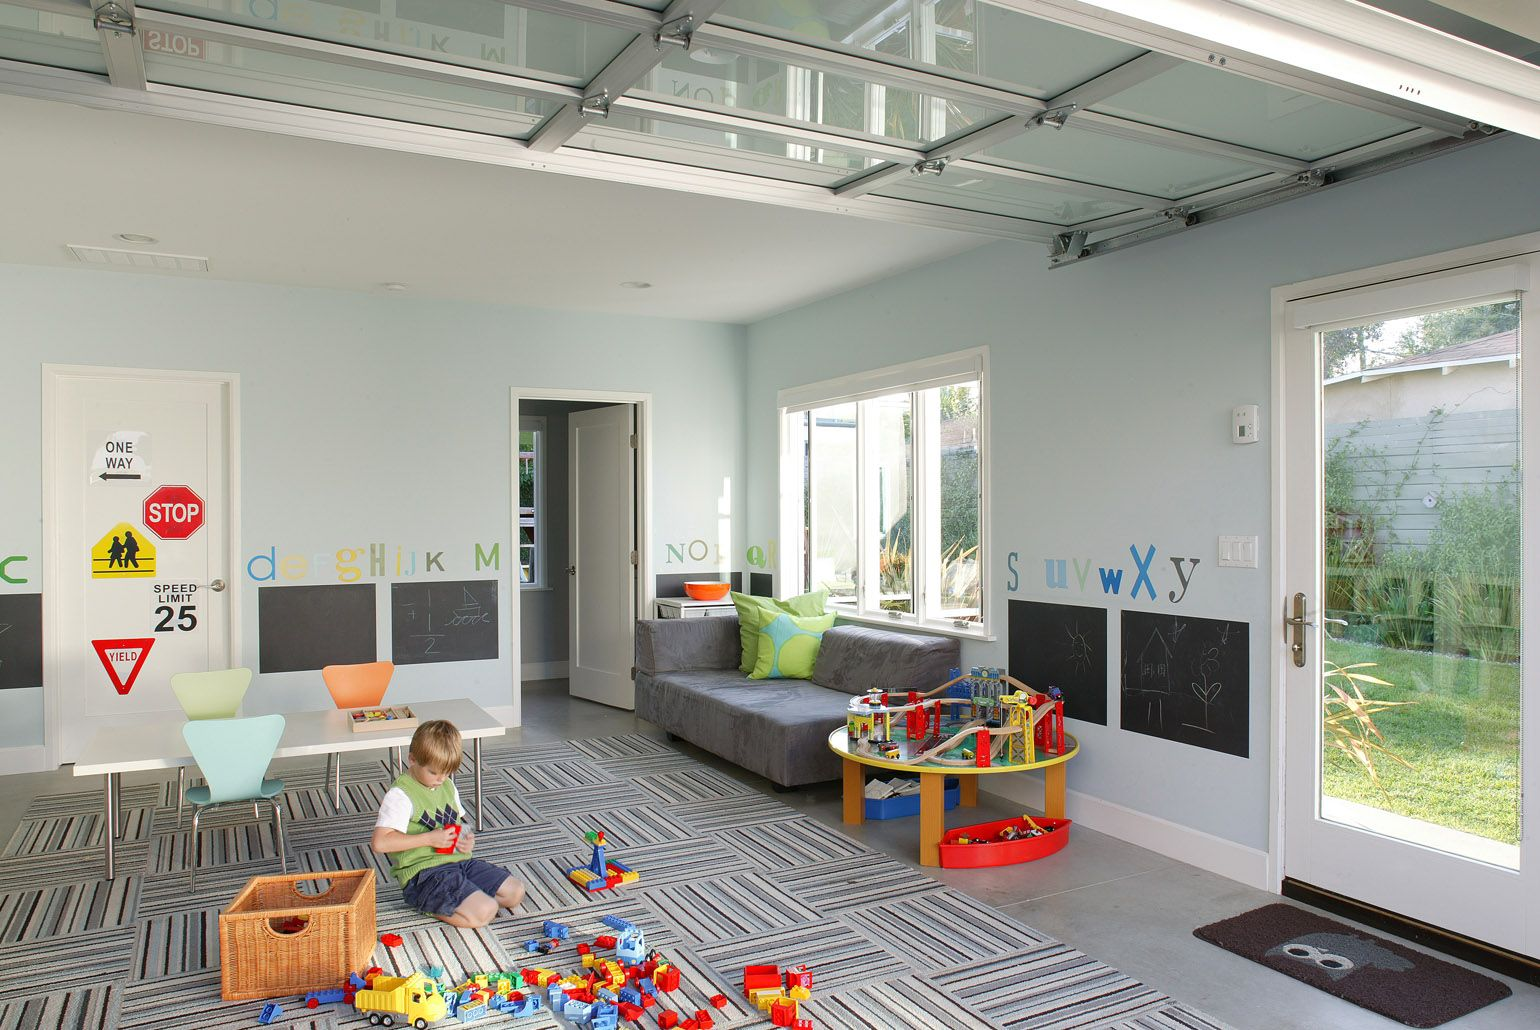 convert a garage into a children s playroom best remodeled home convert a garage into a children s playroom best remodeled home fine homebuilding s 2014 houses awards